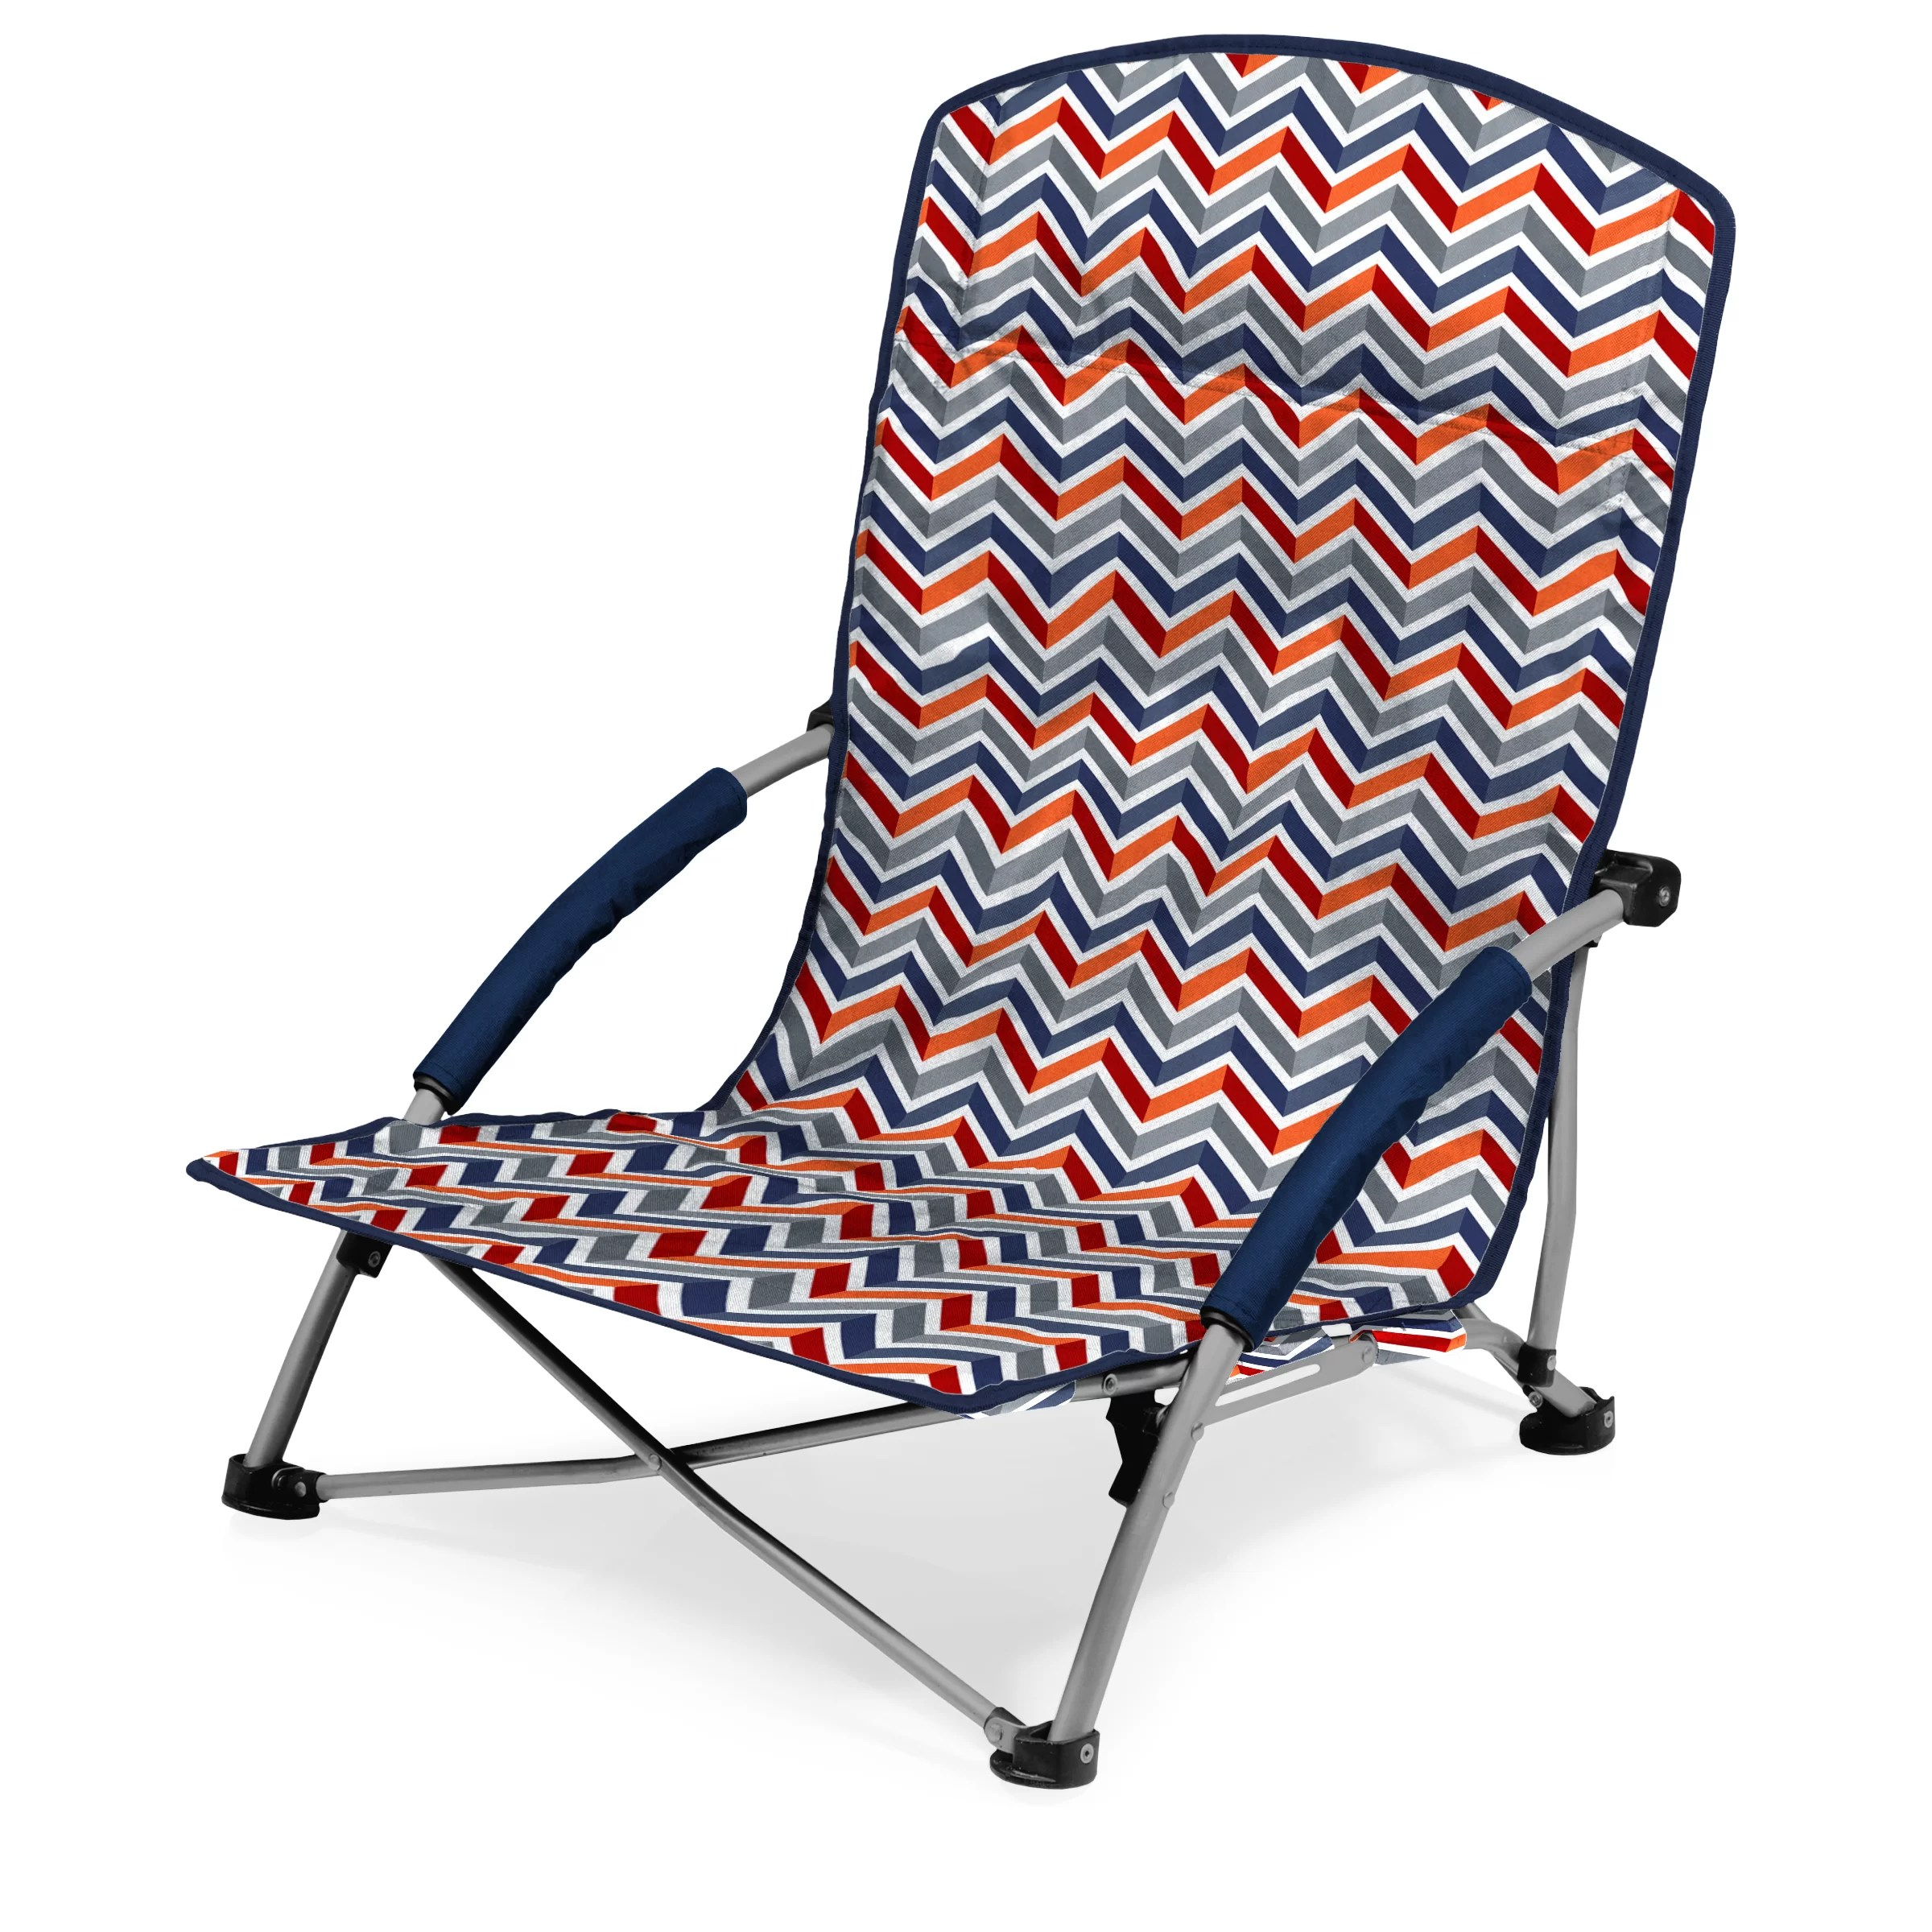 Portable Beach Chair Eulalie Tranquility Portable Folding Beach Chair